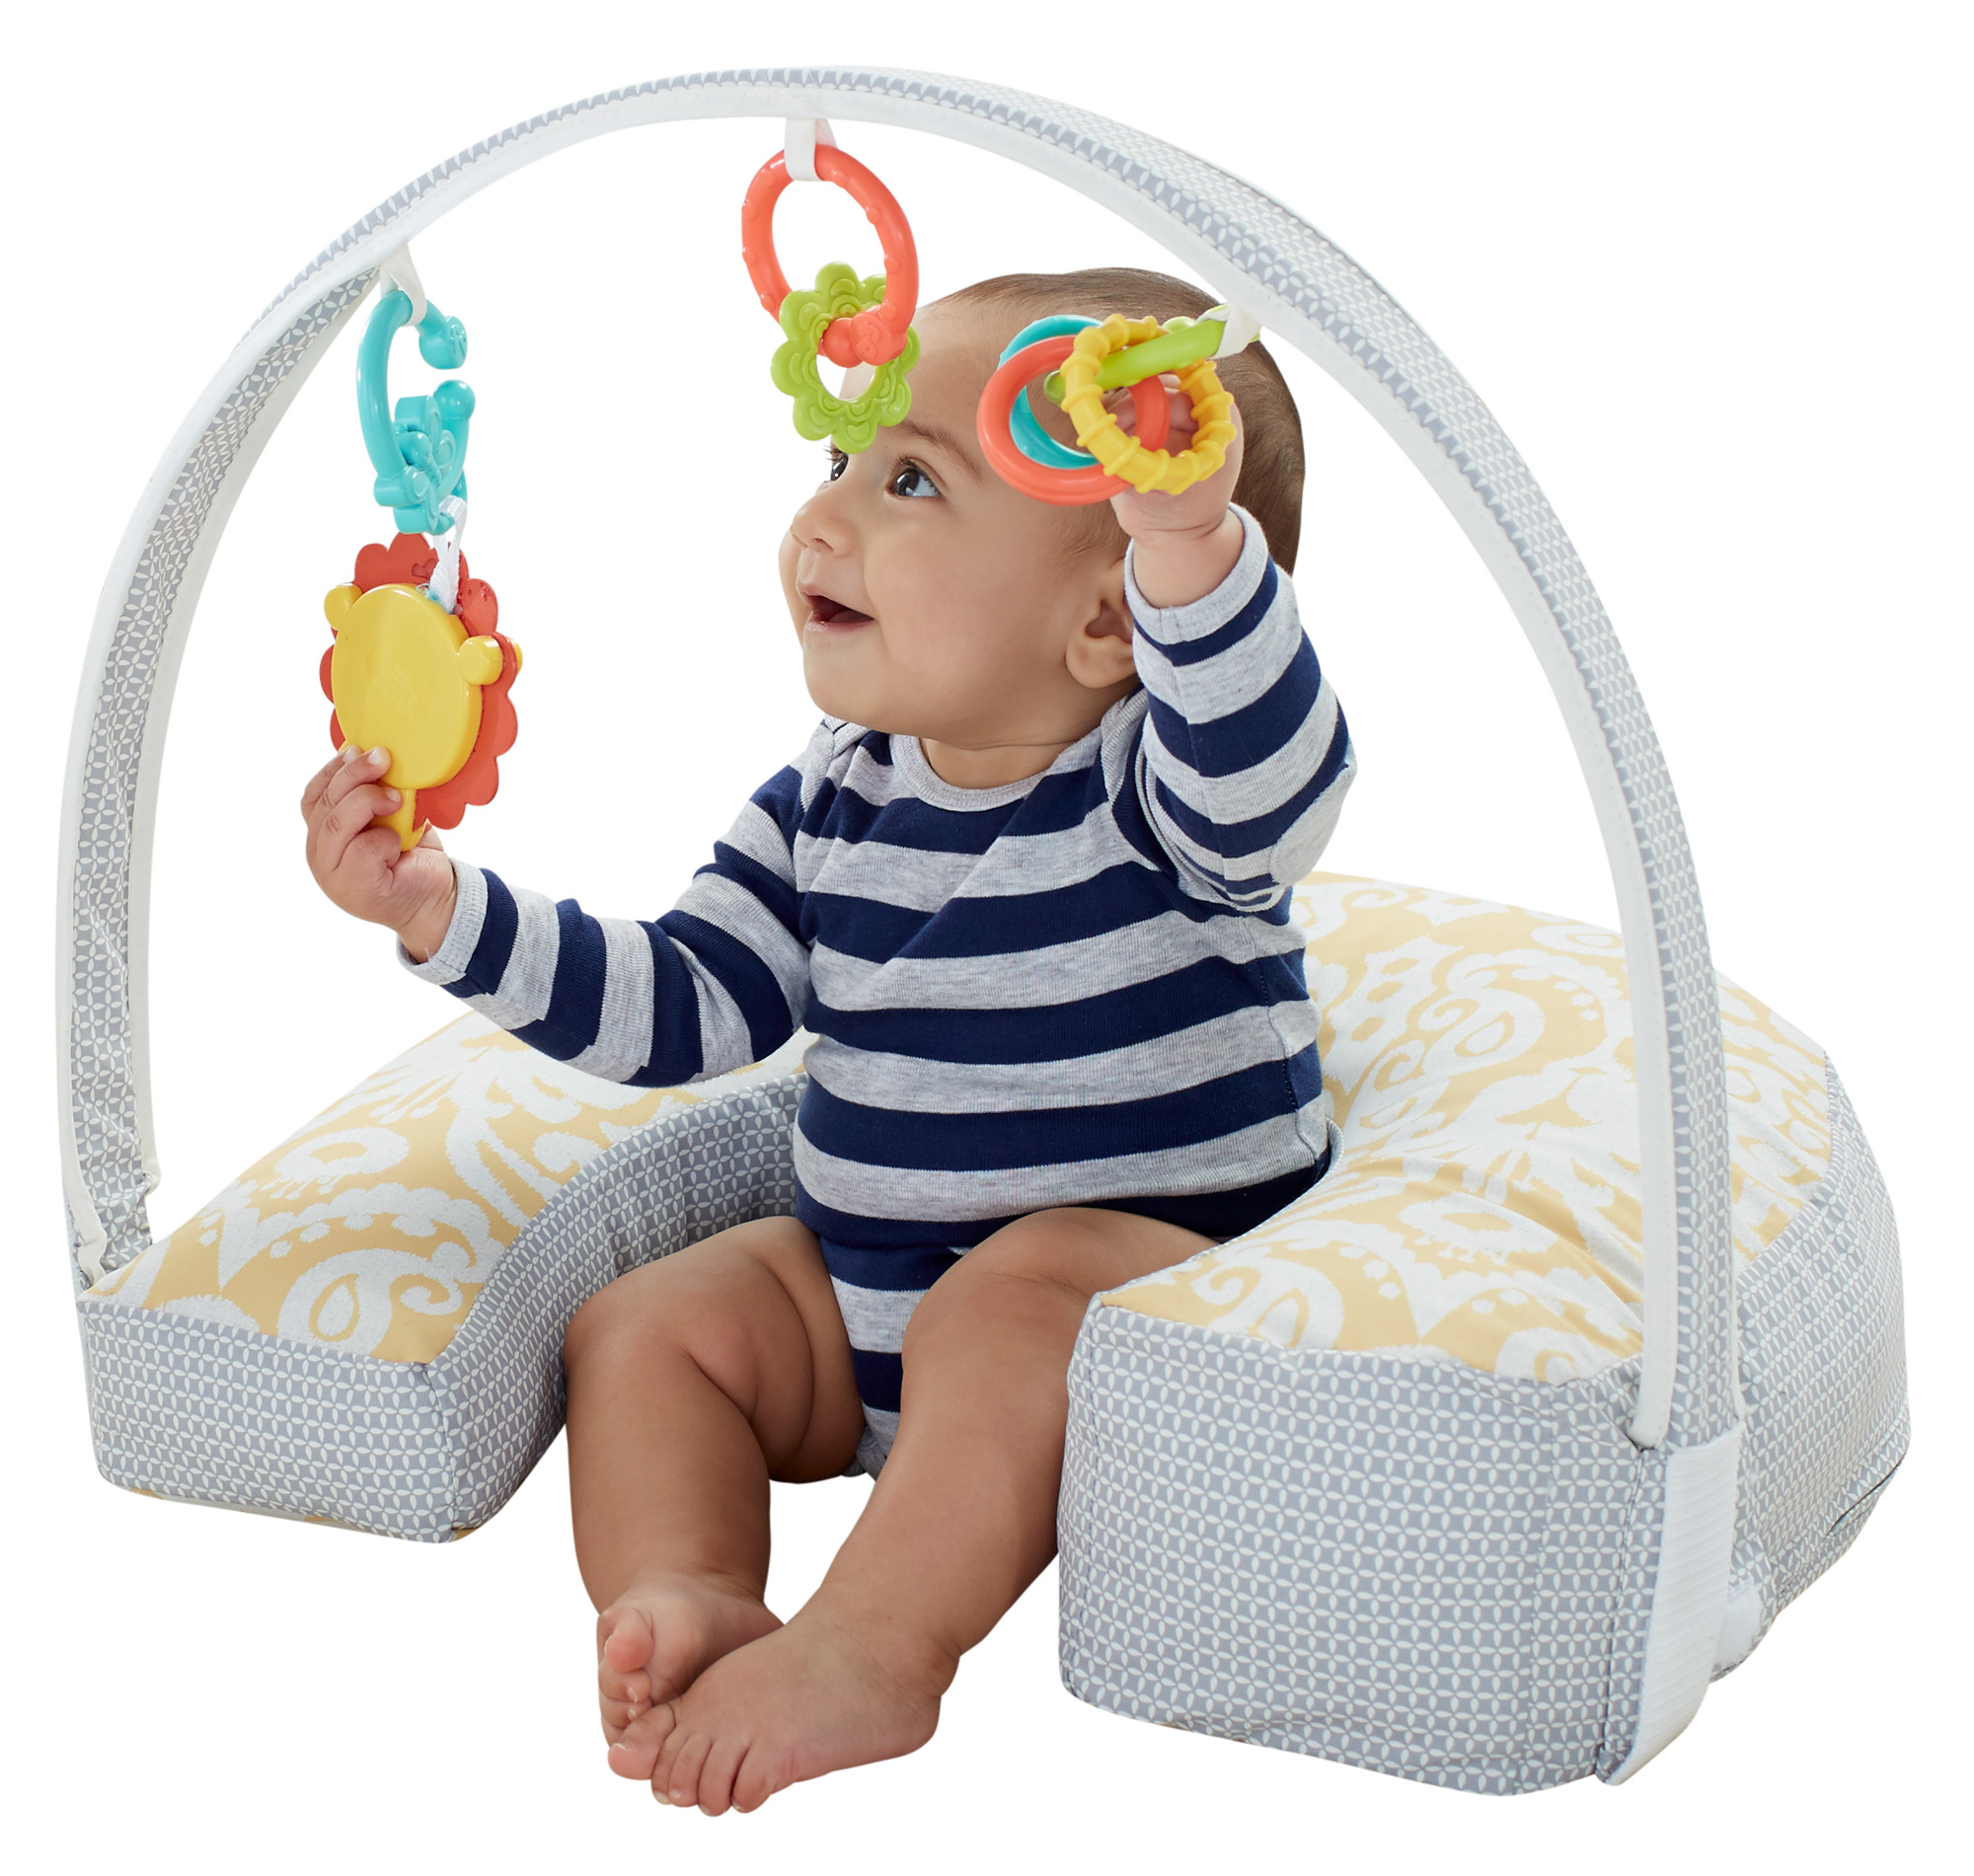 Fisher Price Perfect Position 4 in 1 Nursing Pillow Walmart